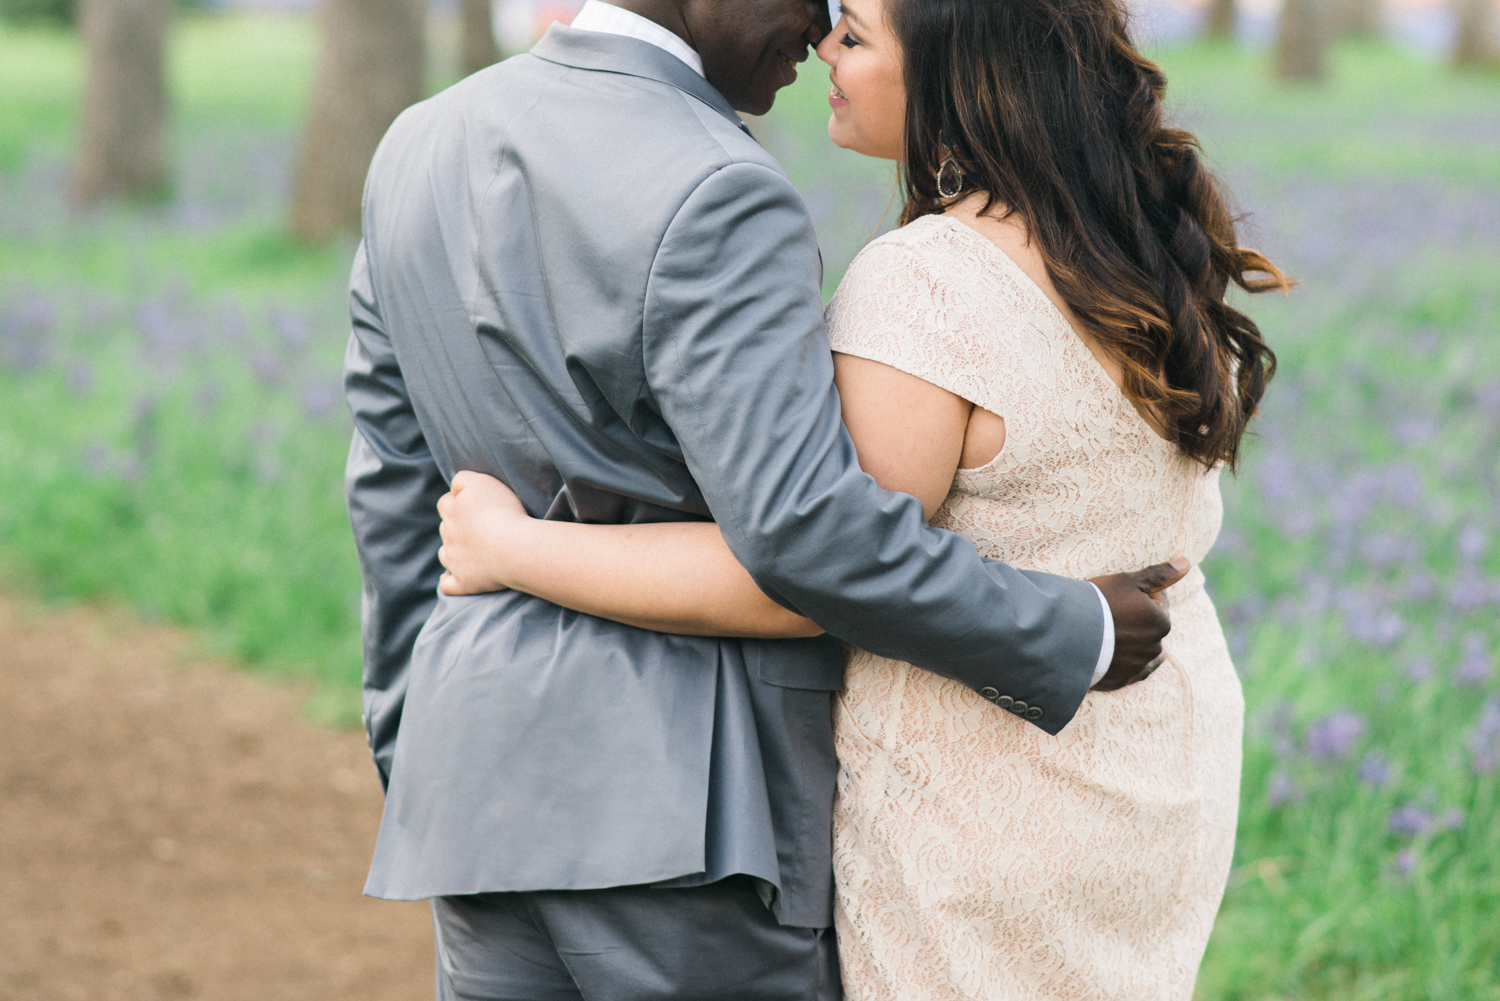 romantic-salem-engagement-photos-bush-park-shelley-marie-photo-14